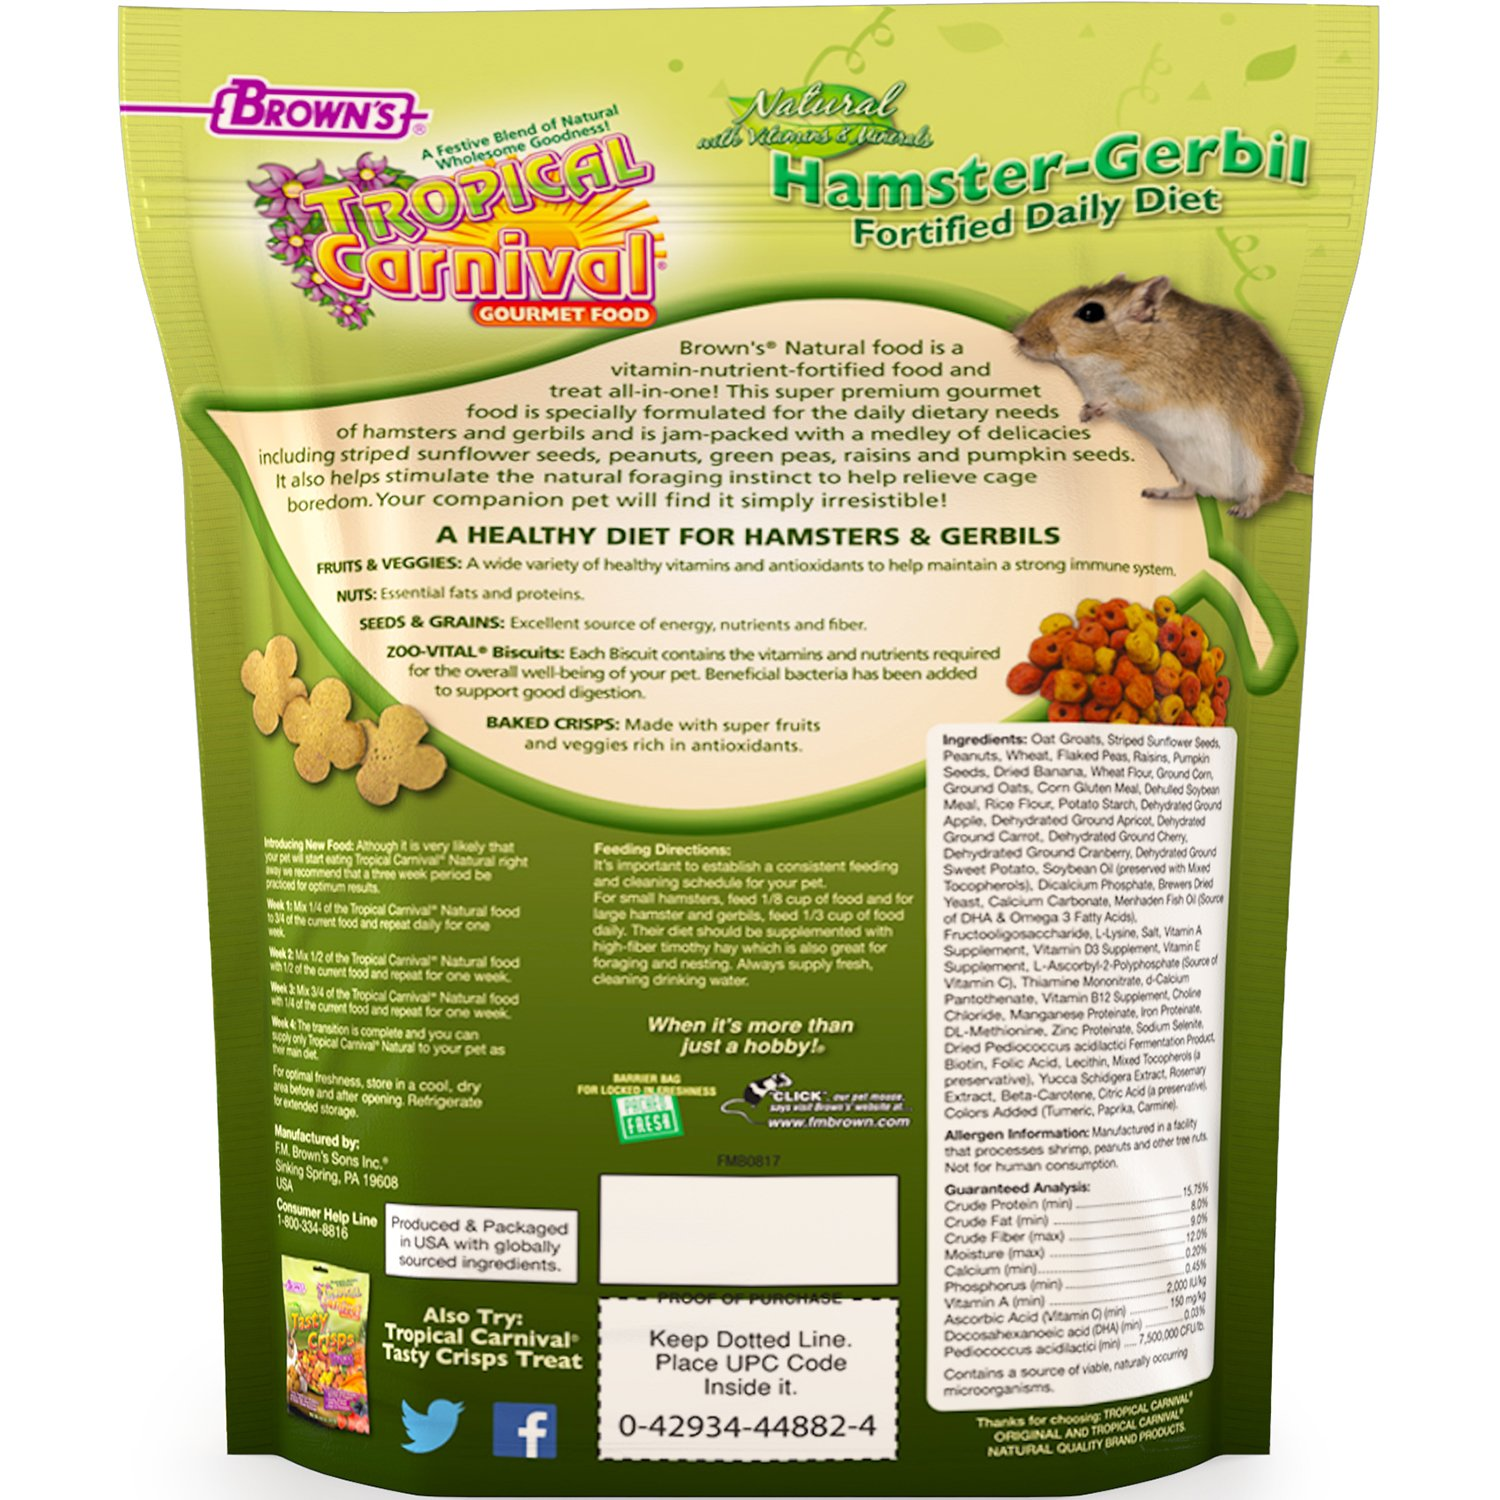 FM Brown's Tropical Carnival Natural Hamster-Gerbil Food, 2-lb Bag -  Vitamin-Nutrient Fortified Daily Diet, NO Filler Seeds, NO Artificial  Colors or